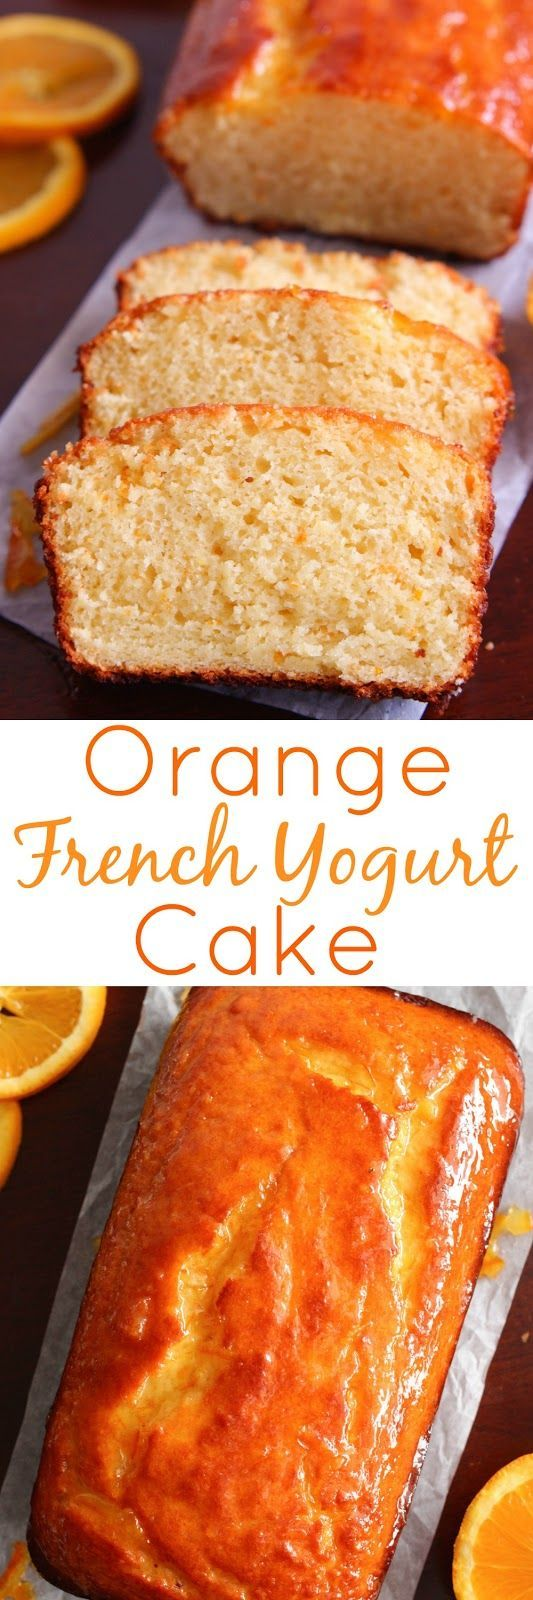 Eat Cake For Dinner: Orange French Yogurt Cake and Brunch at Bobby's Cookbook Review